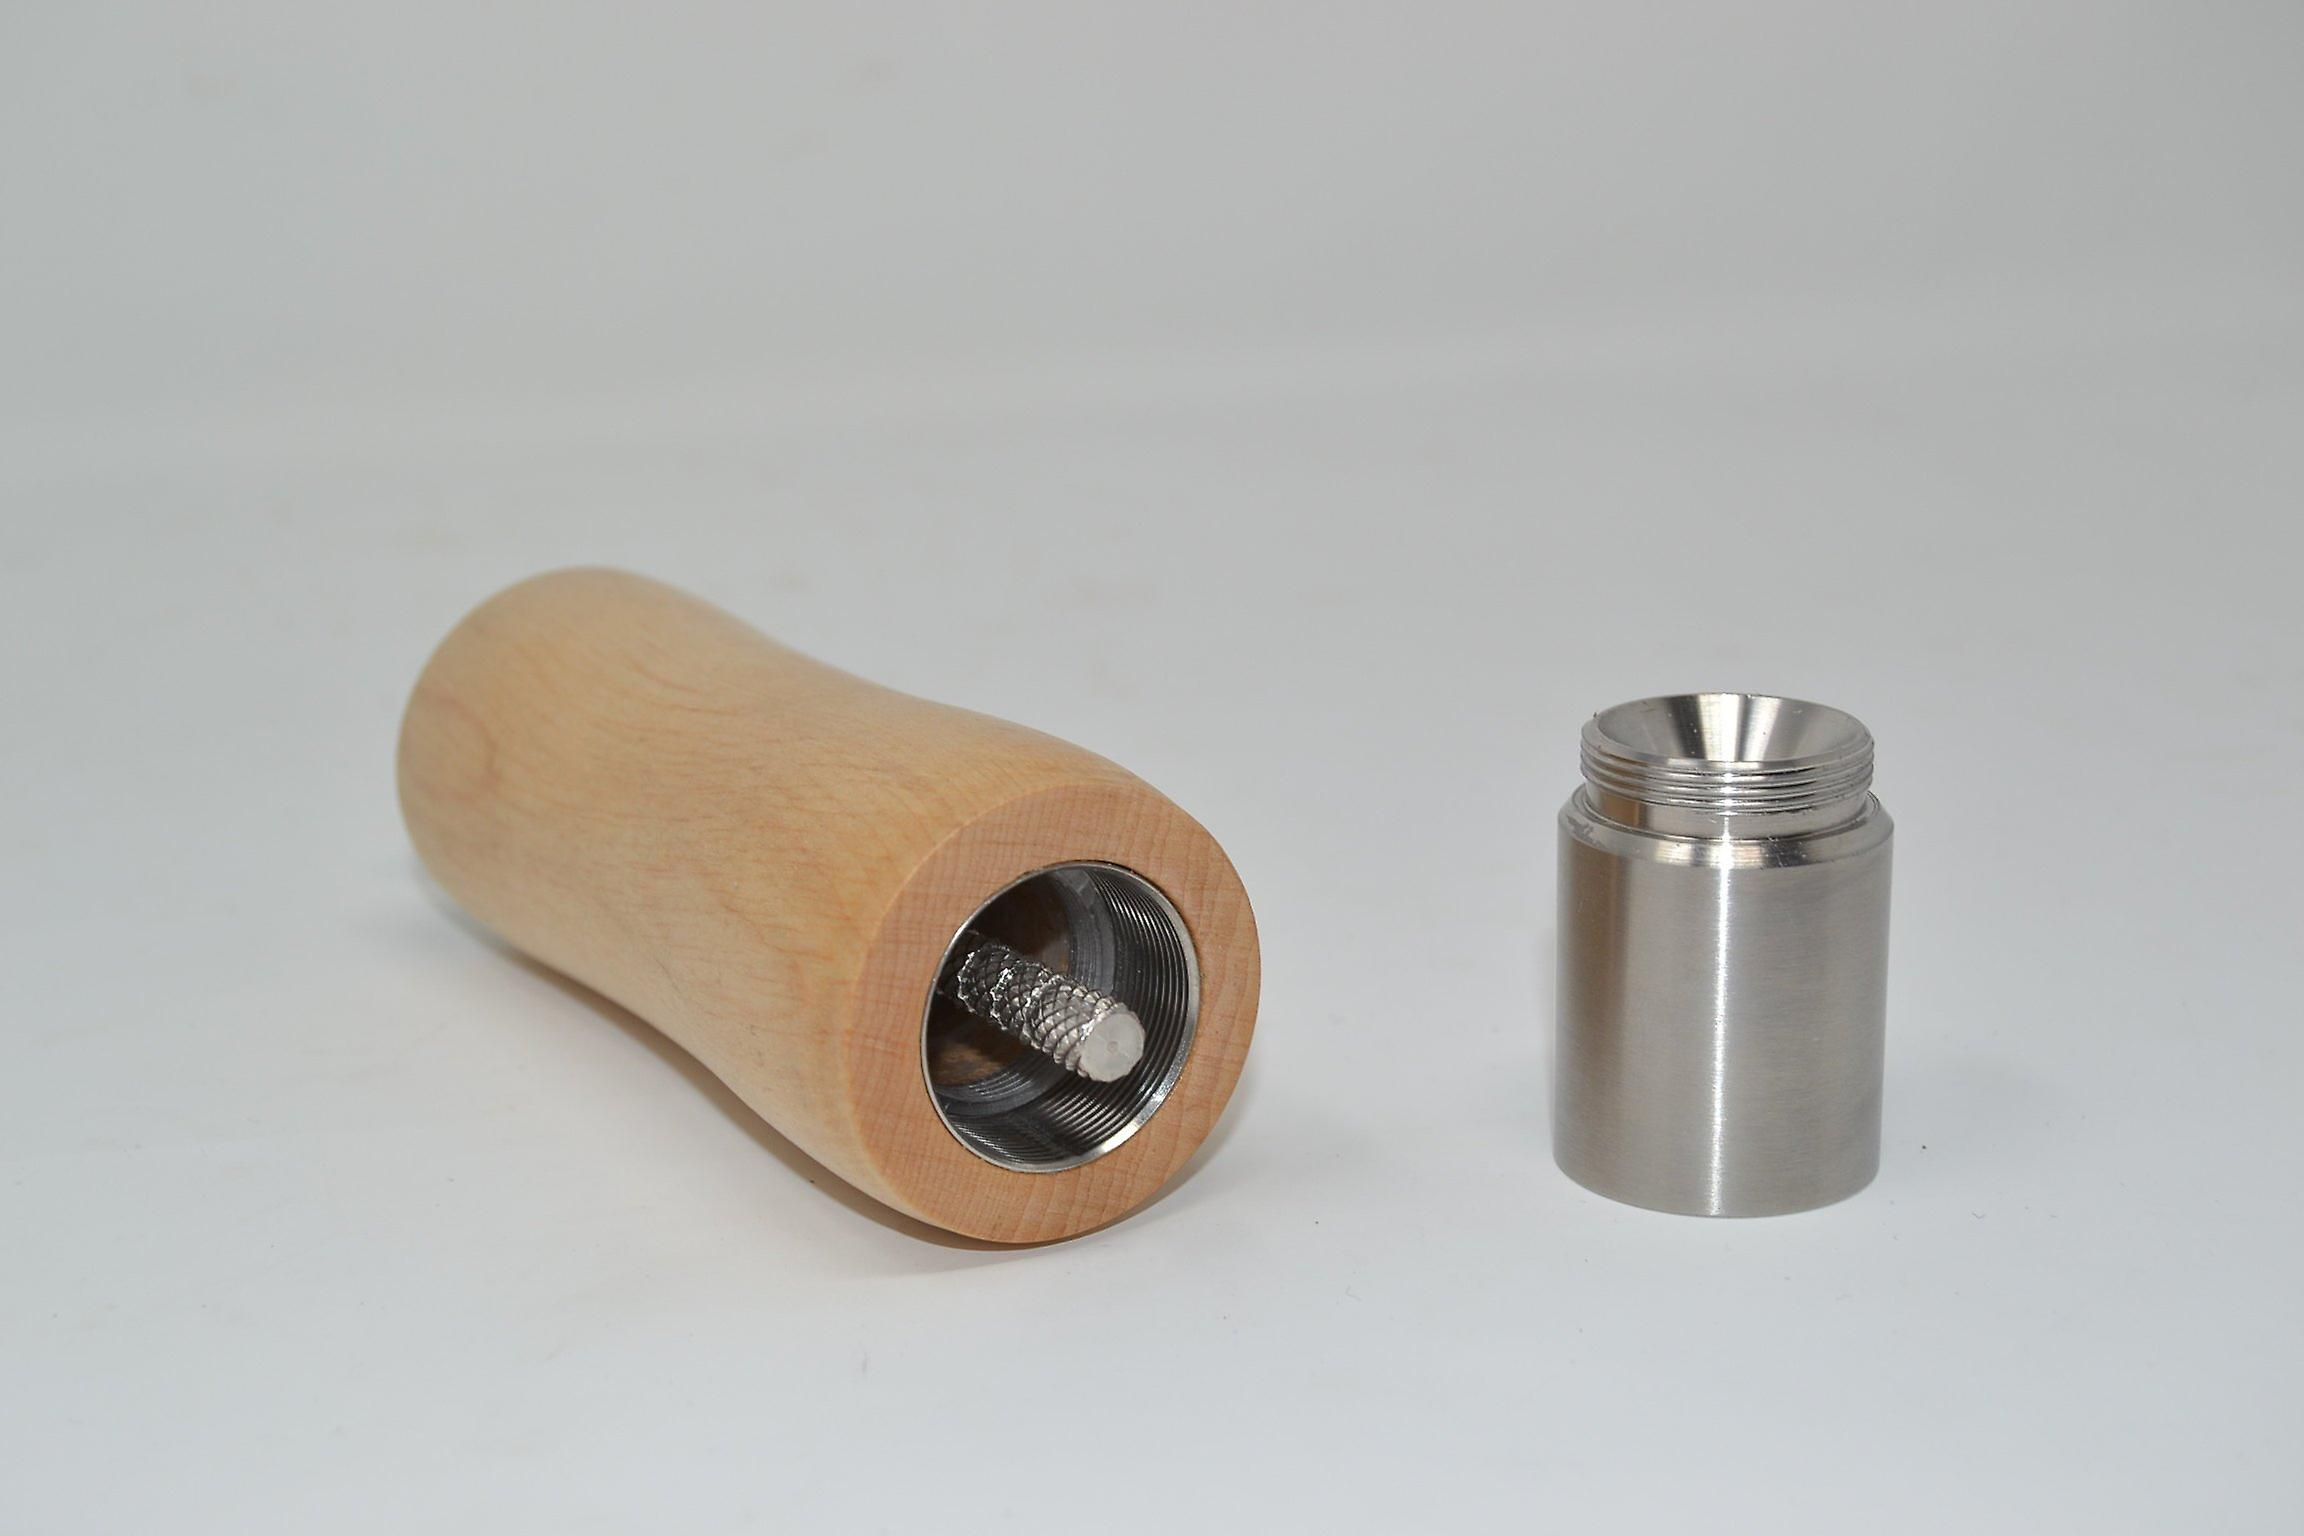 Wood single hand spice grinder mill from Alder Pepper Mill, salt mill of pepper spice salt mill hand made made in Austria gift gift idea